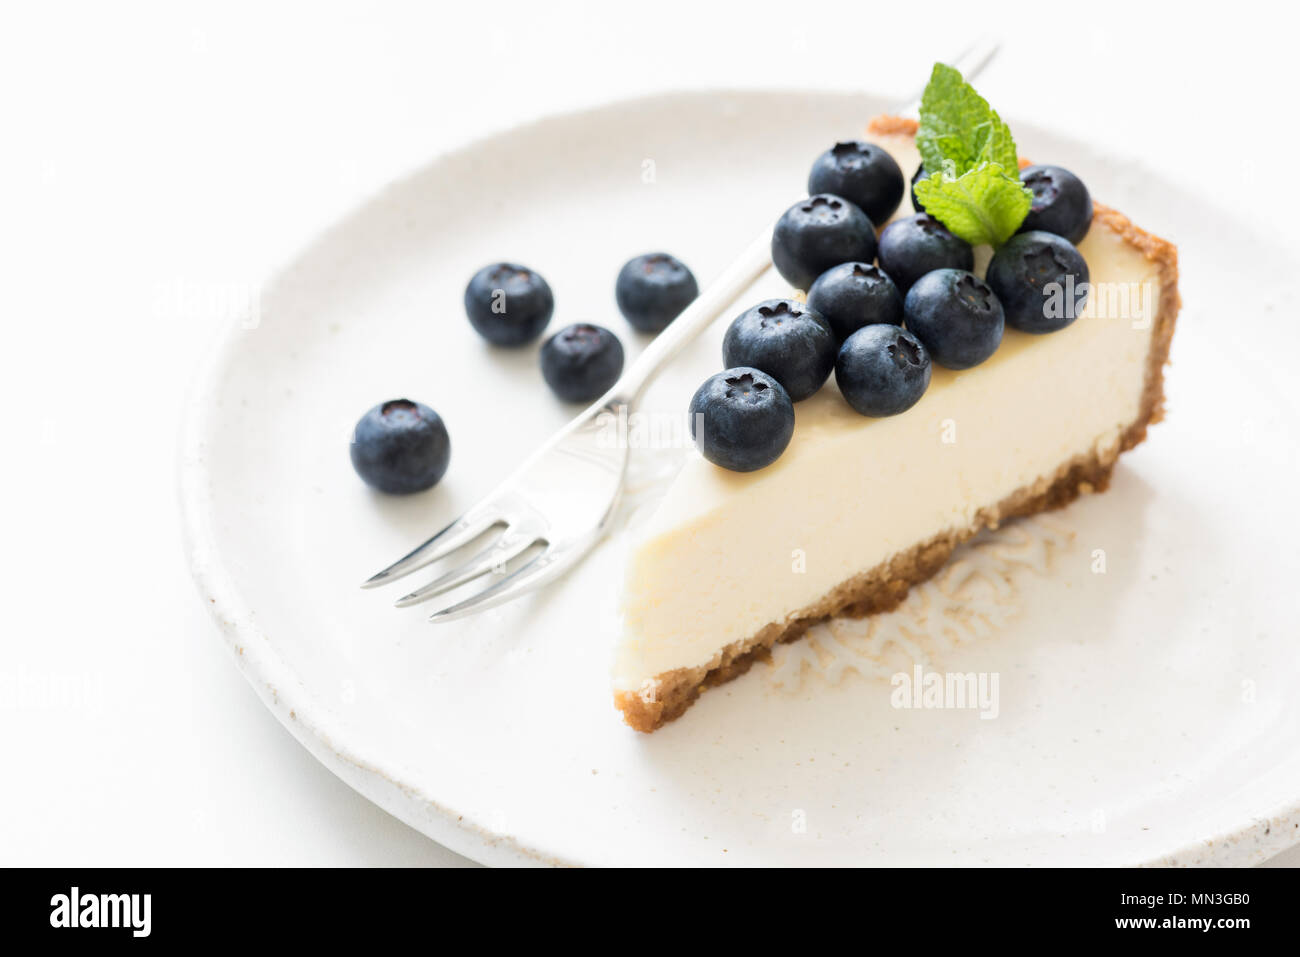 Slice of cheesecake with blueberries and mint leaf on white. Closeup view, selective focus. New York cheesecake - Stock Image